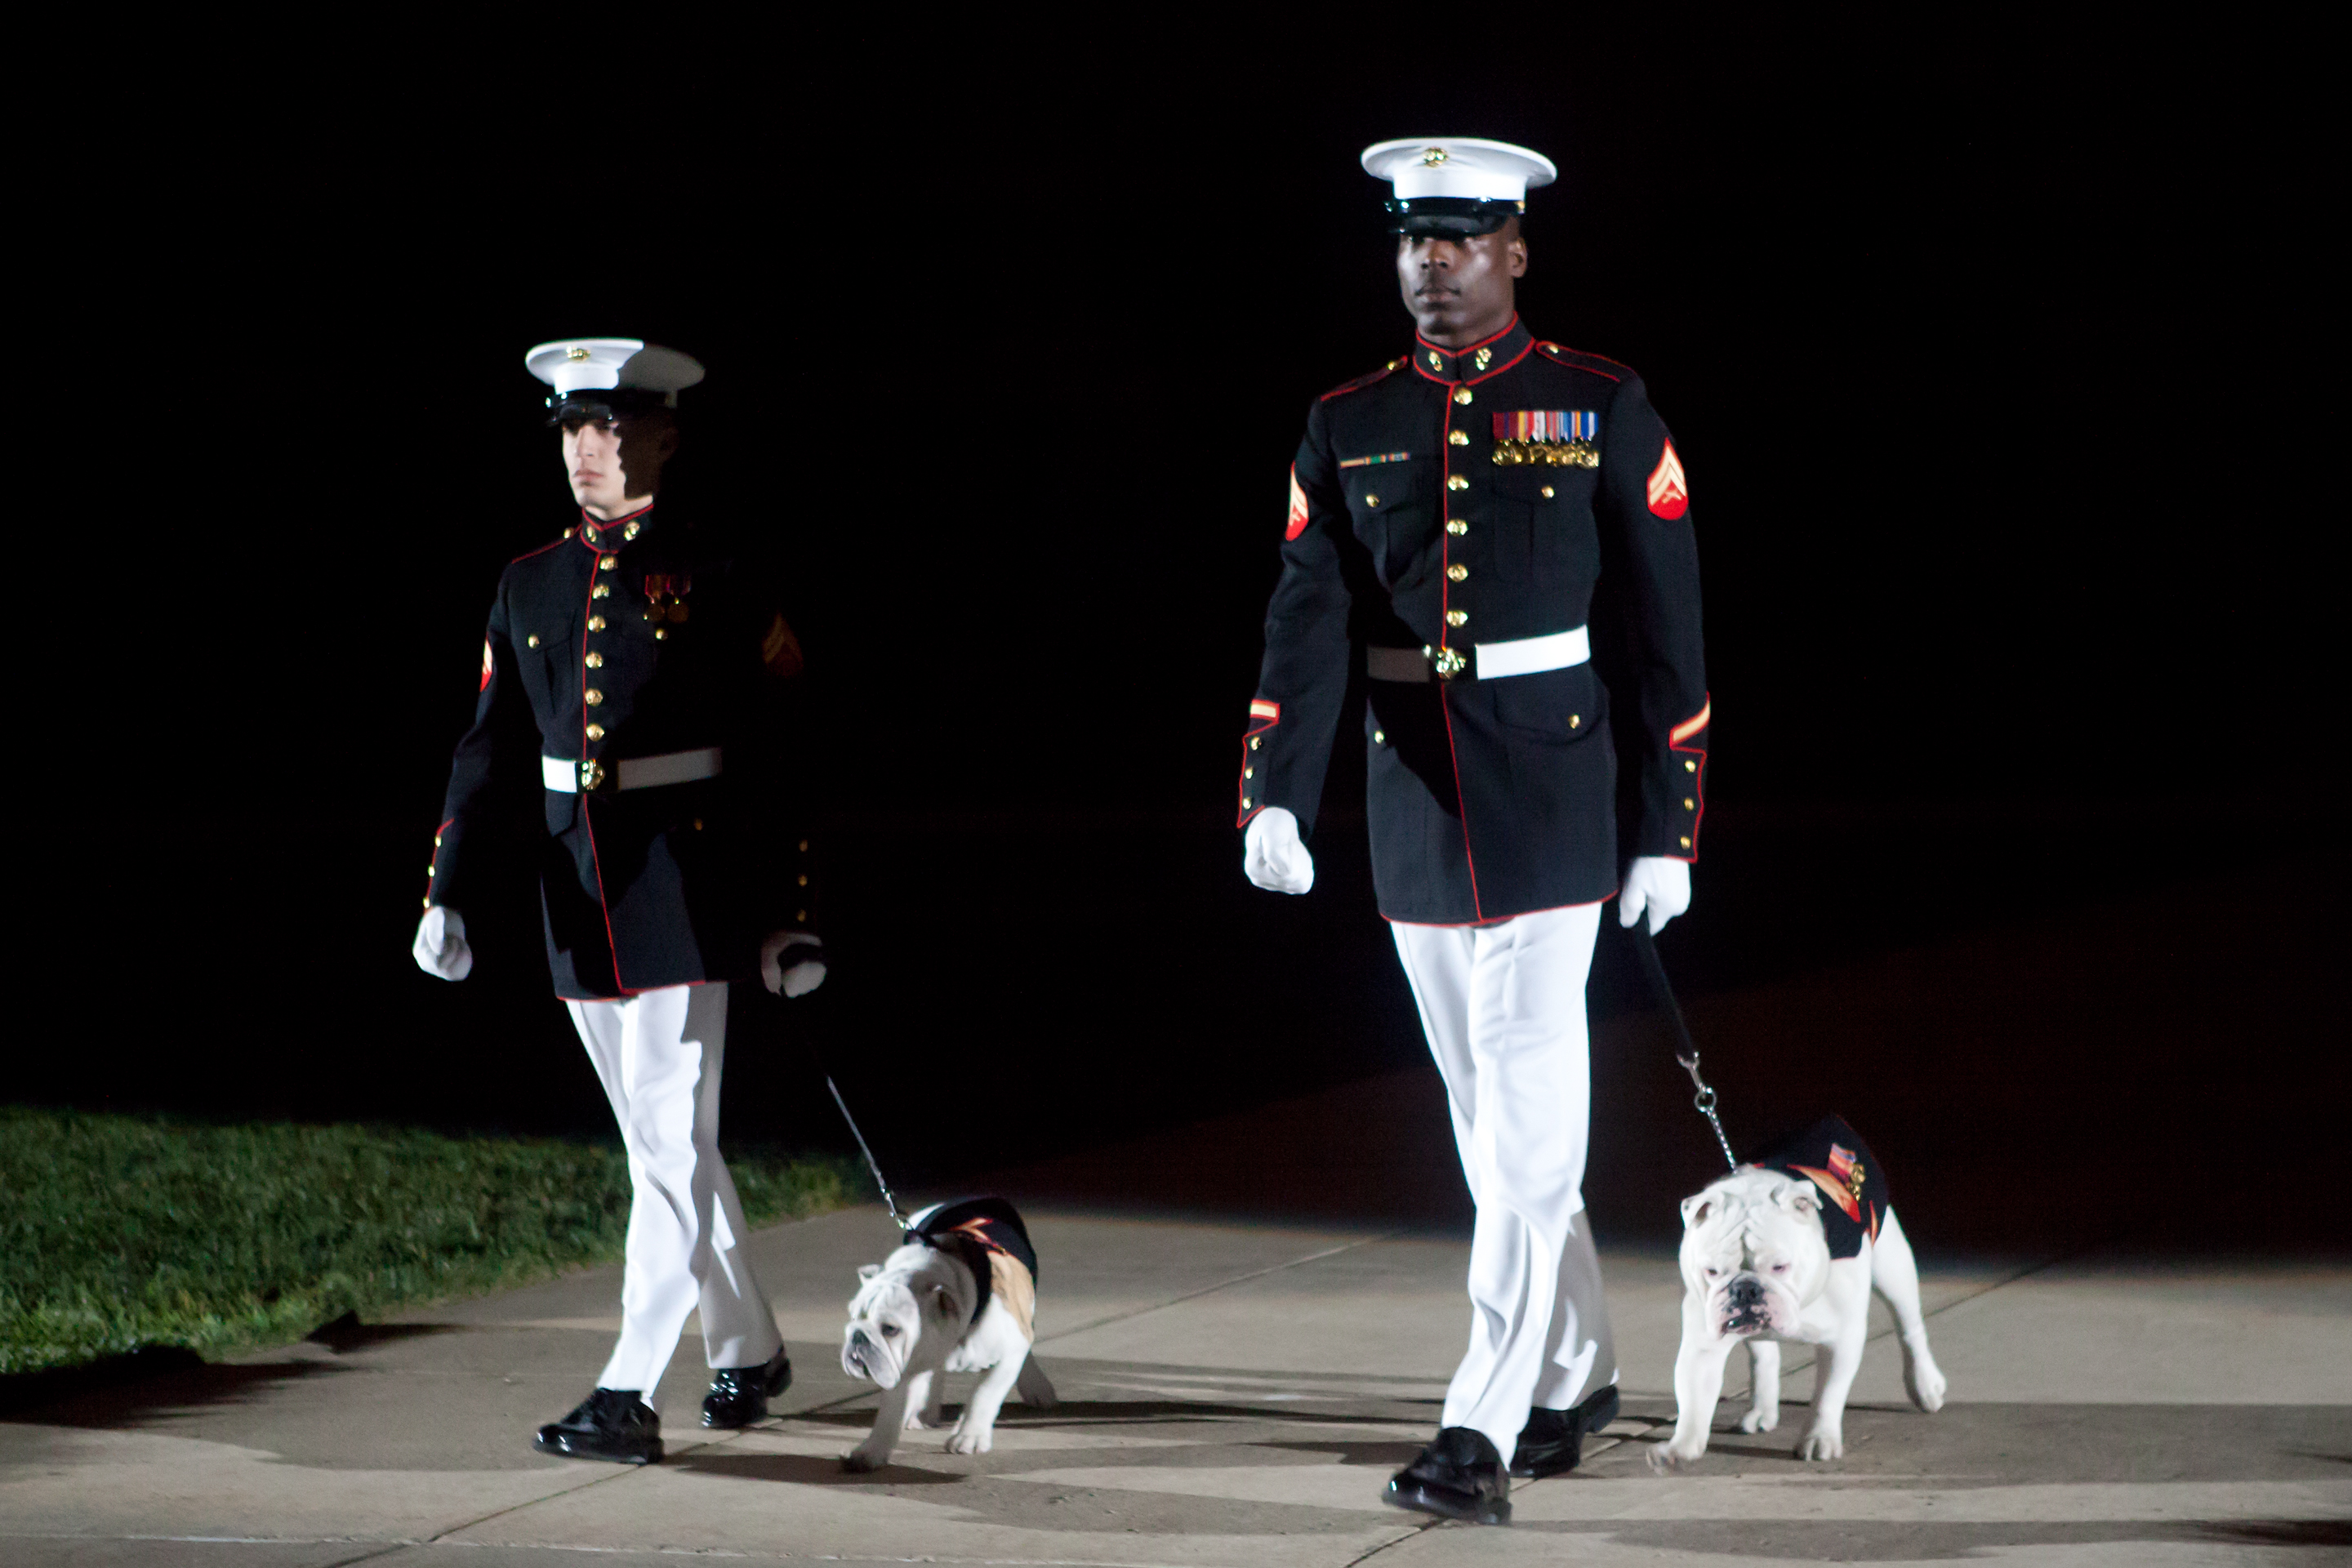 File:U.S. Marine Corps sergeants escort the current Marine ...